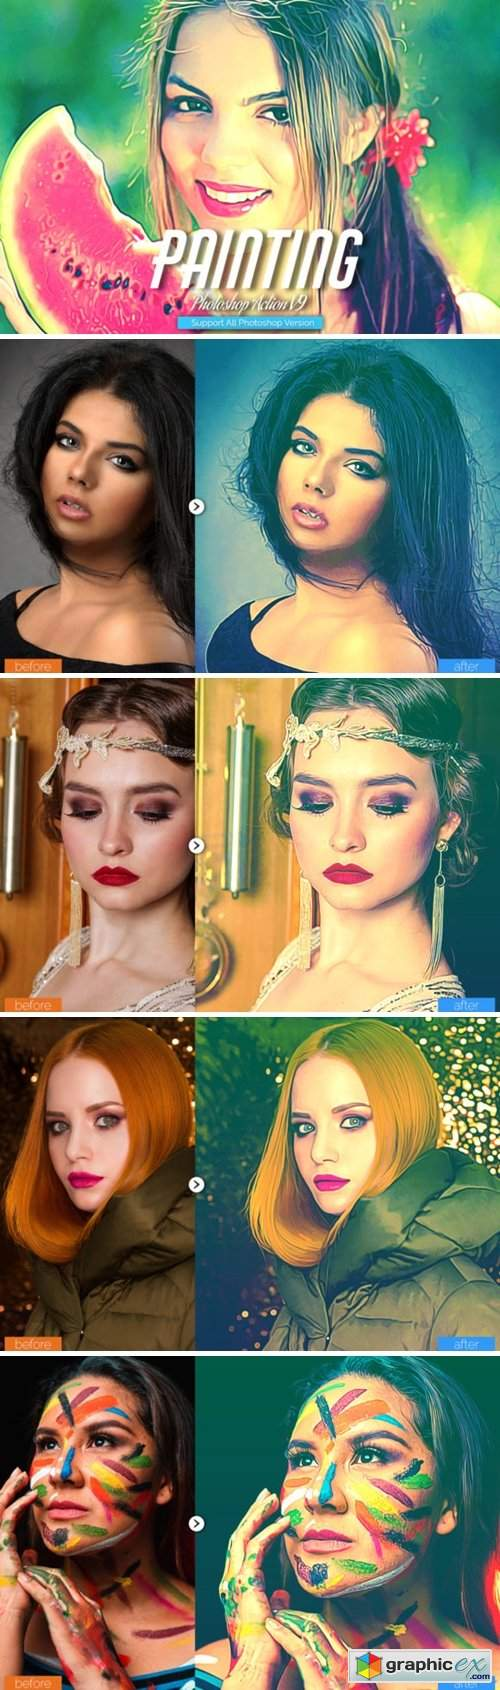 Painting Photoshop Action V9